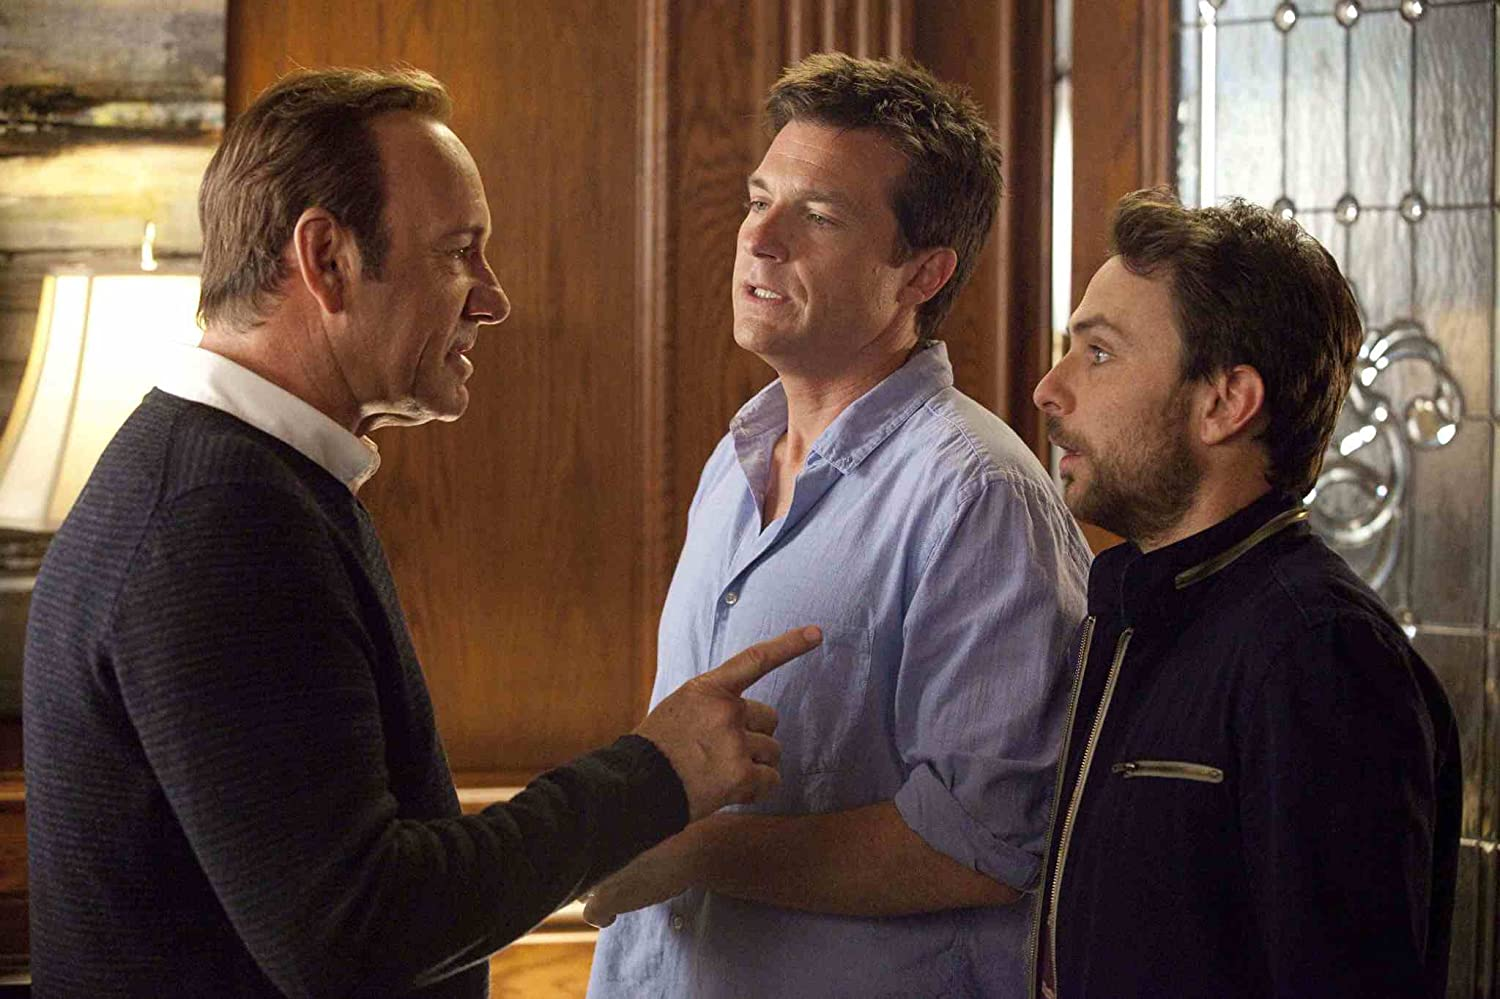 Kevin Spacey, Jason Bateman, and Charlie Day in Horrible Bosses (2011)